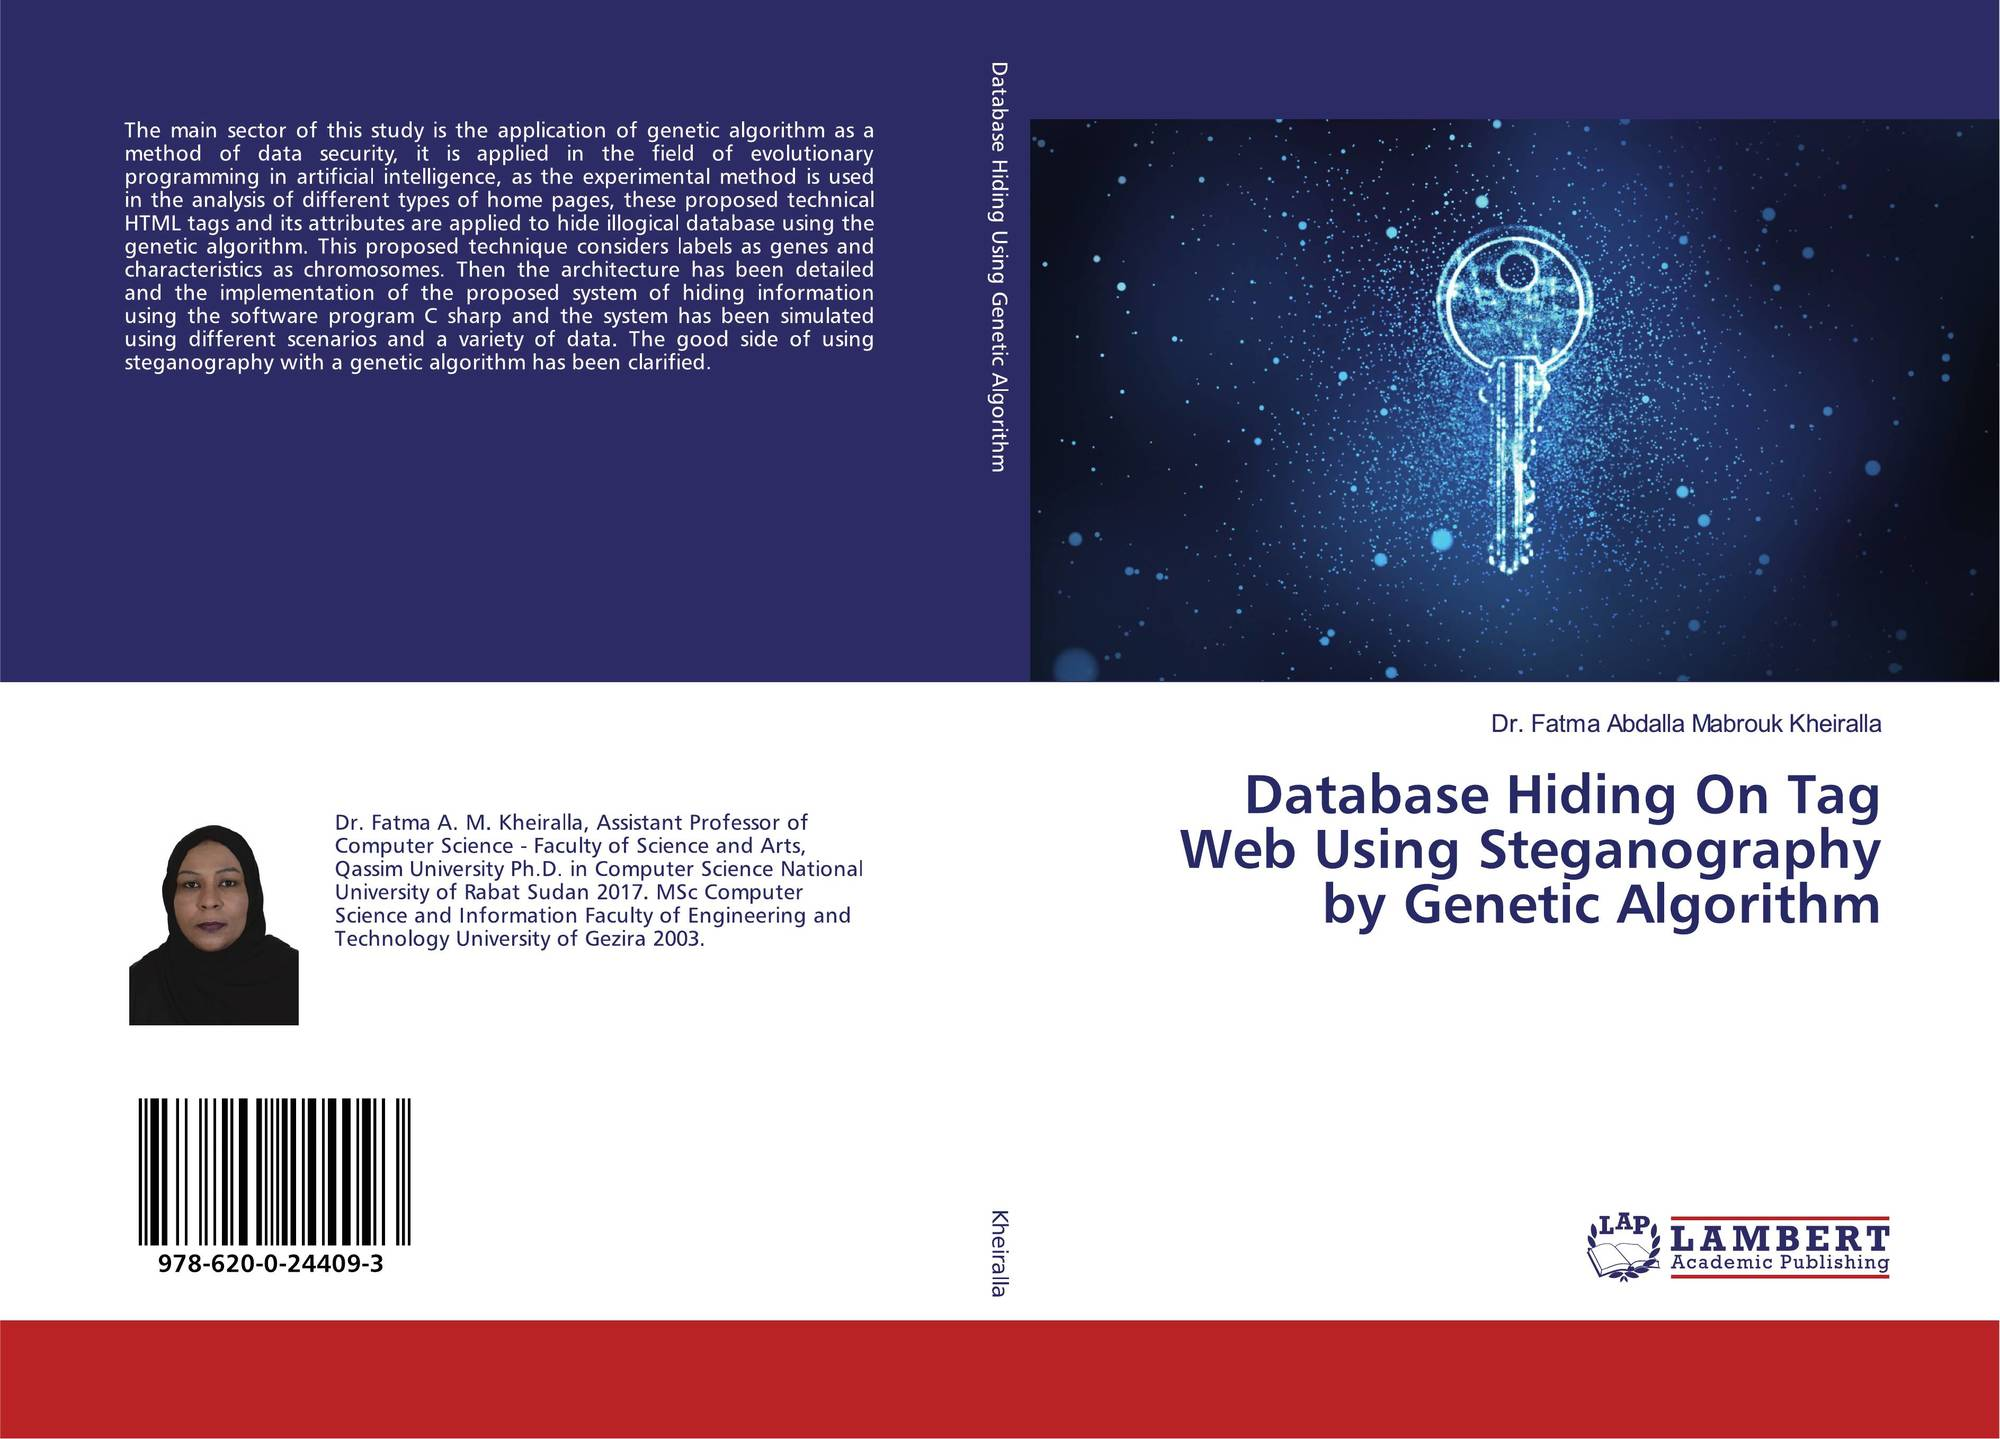 Database Hiding On Tag Web Using Steganography by Genetic